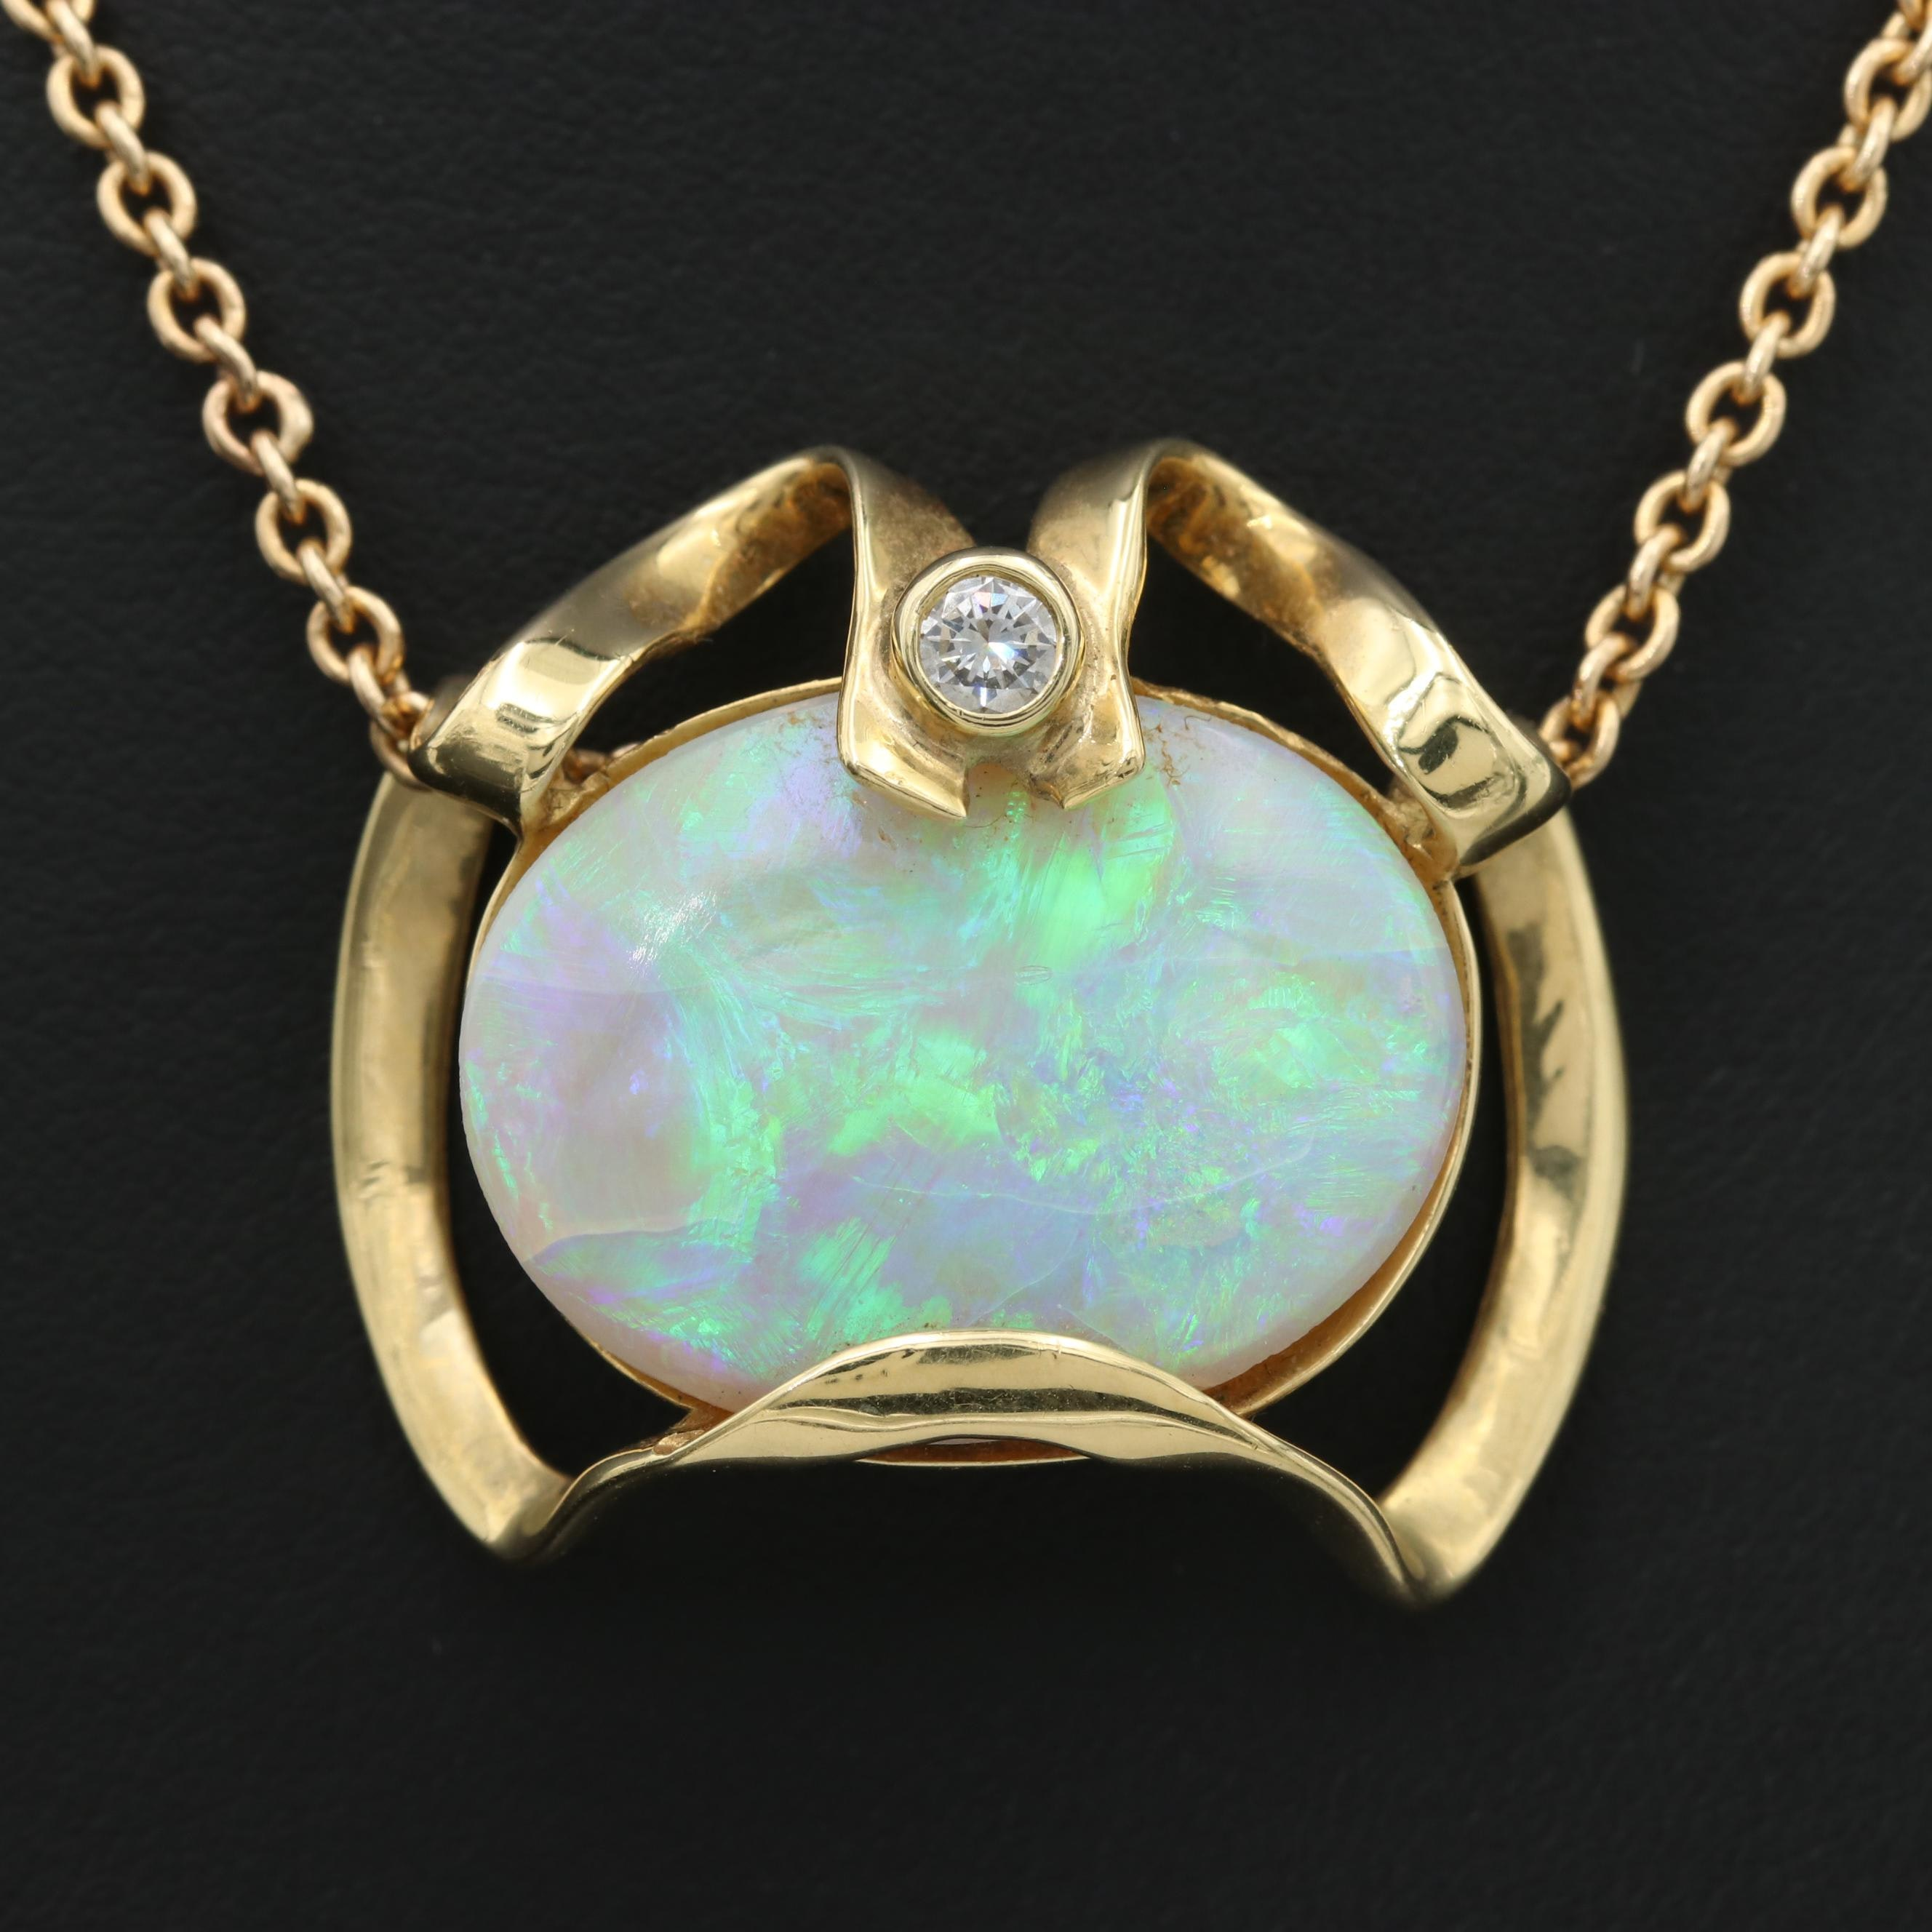 Vintage 14K and 18K Yellow Gold 14.02 CT Opal and Diamond Slide Pendant Necklace